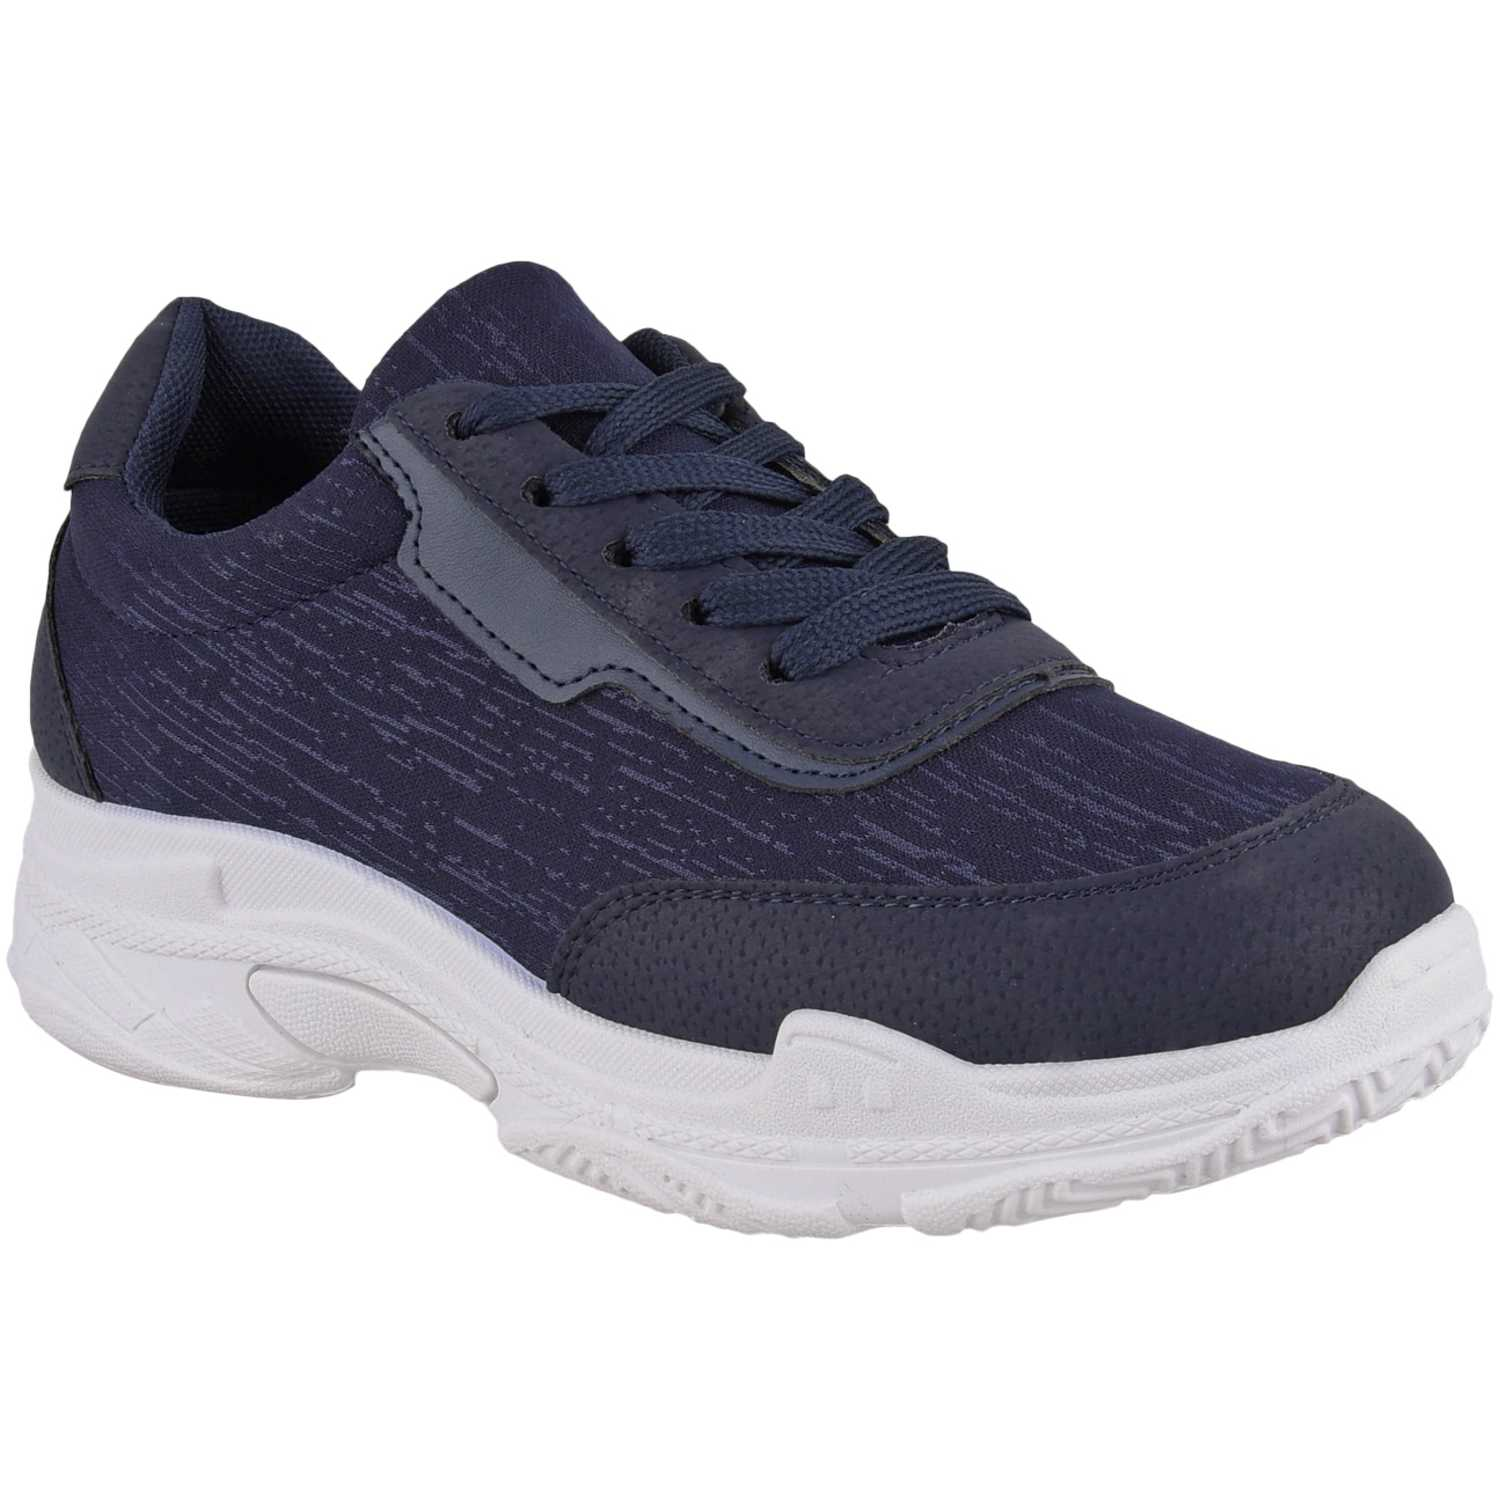 Platanitos z 03 Azul Zapatillas Fashion